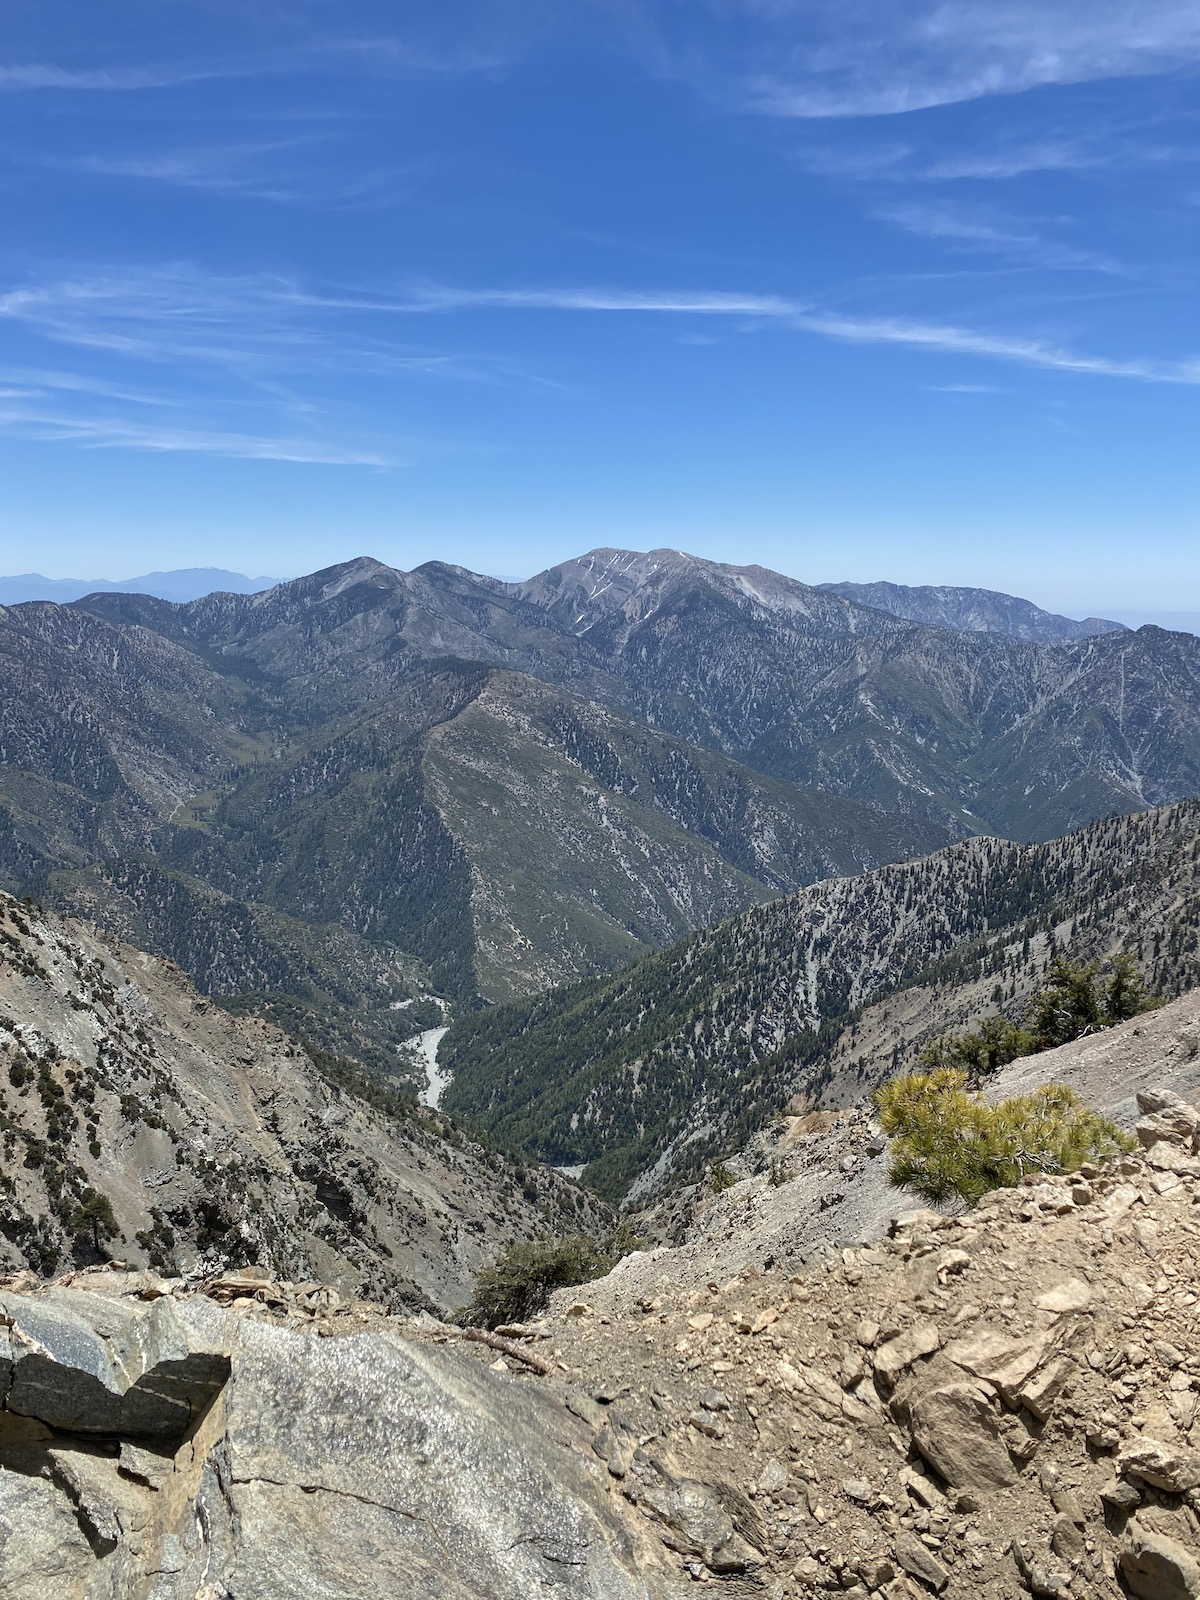 View from the summit of Mount Baden-Powell Trail